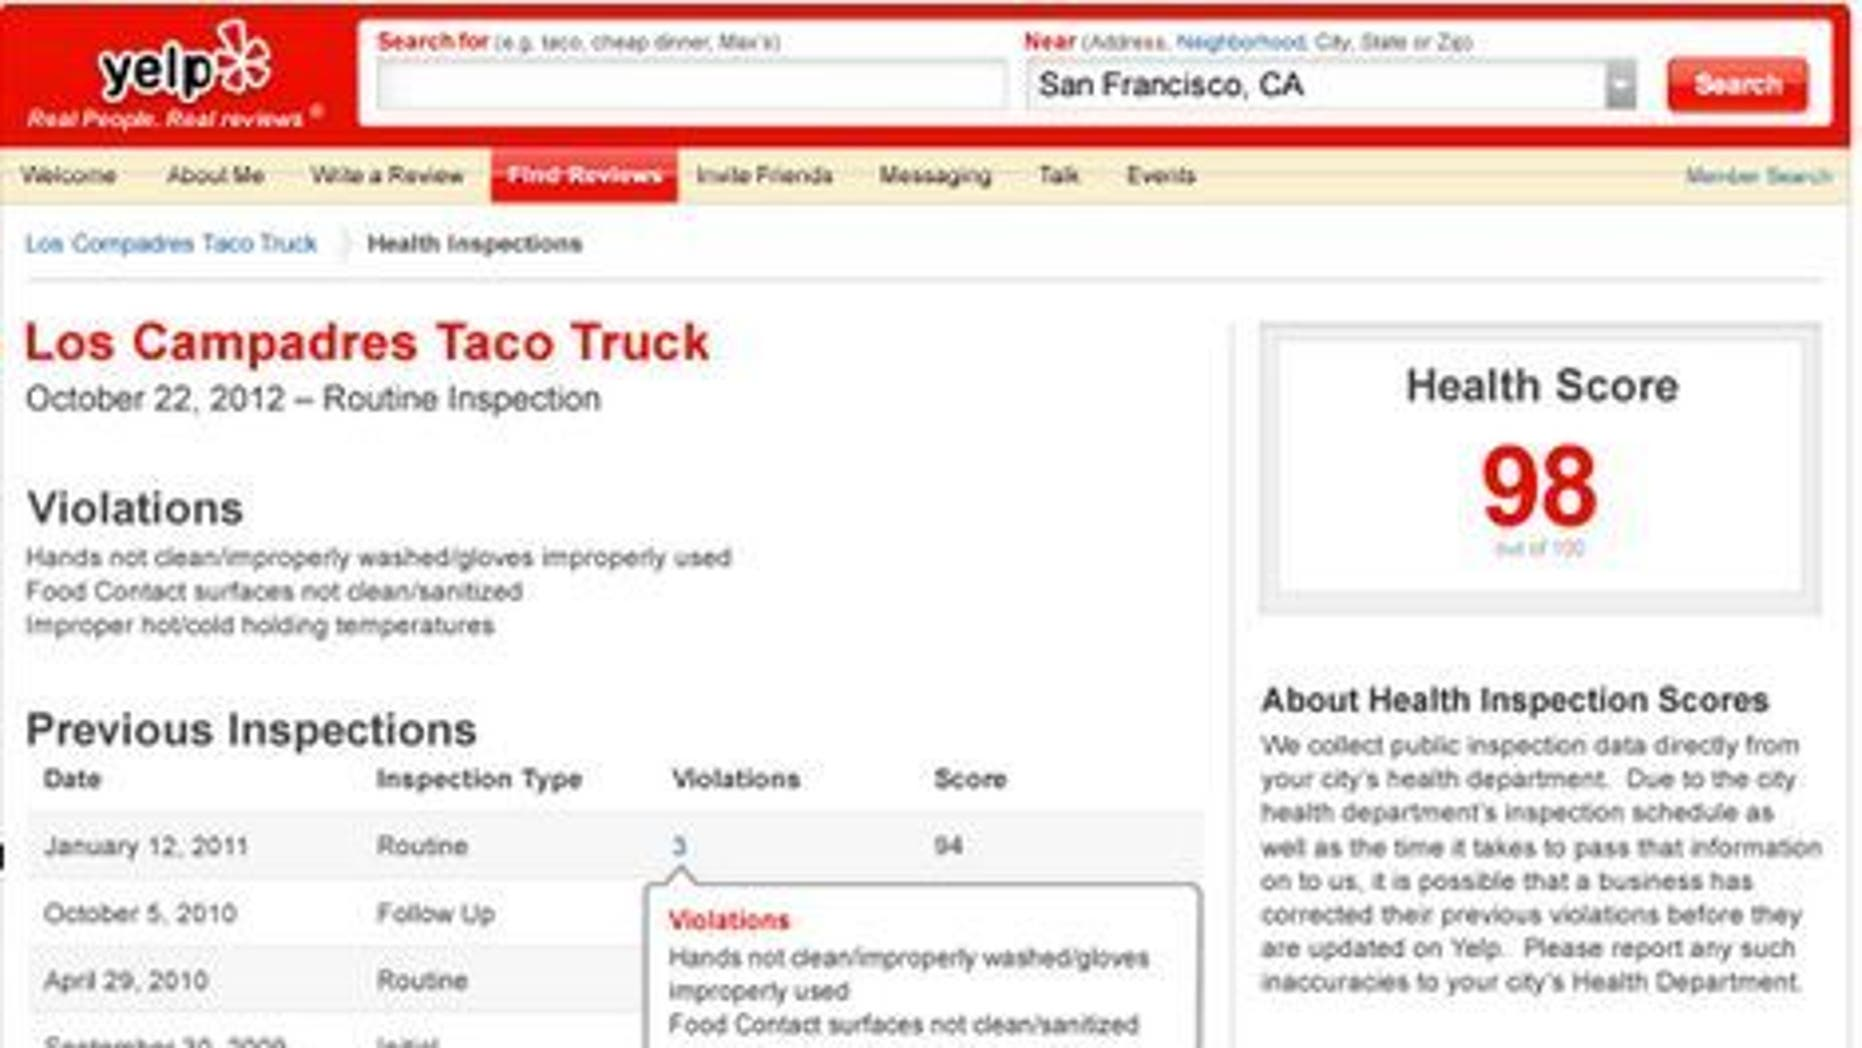 Clicking on the new health score link, opens this window that gives Yelp users detailed information on how a restaurant has fared under health department scrutiny.